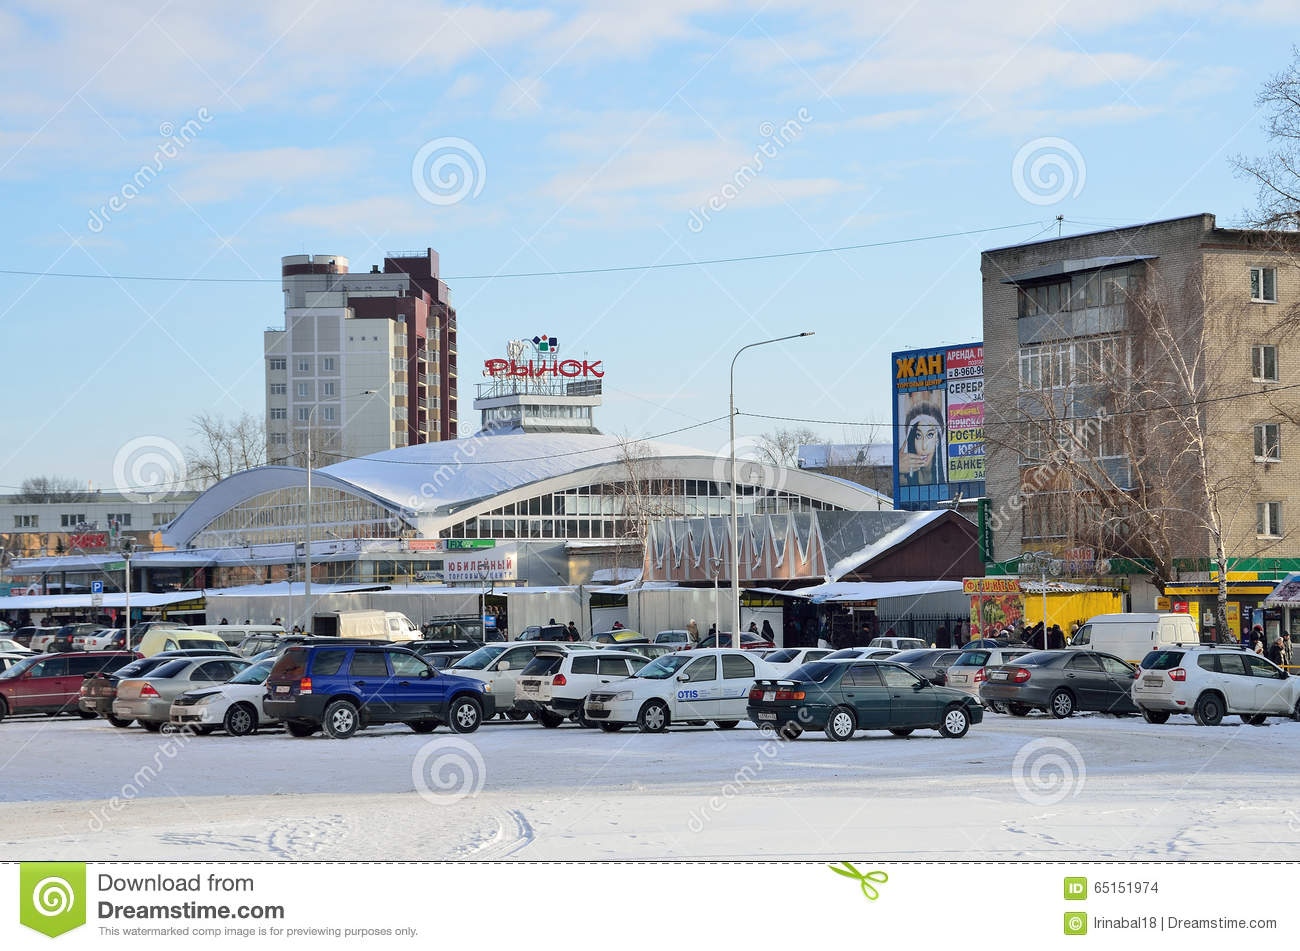 Where is Barnaul 86